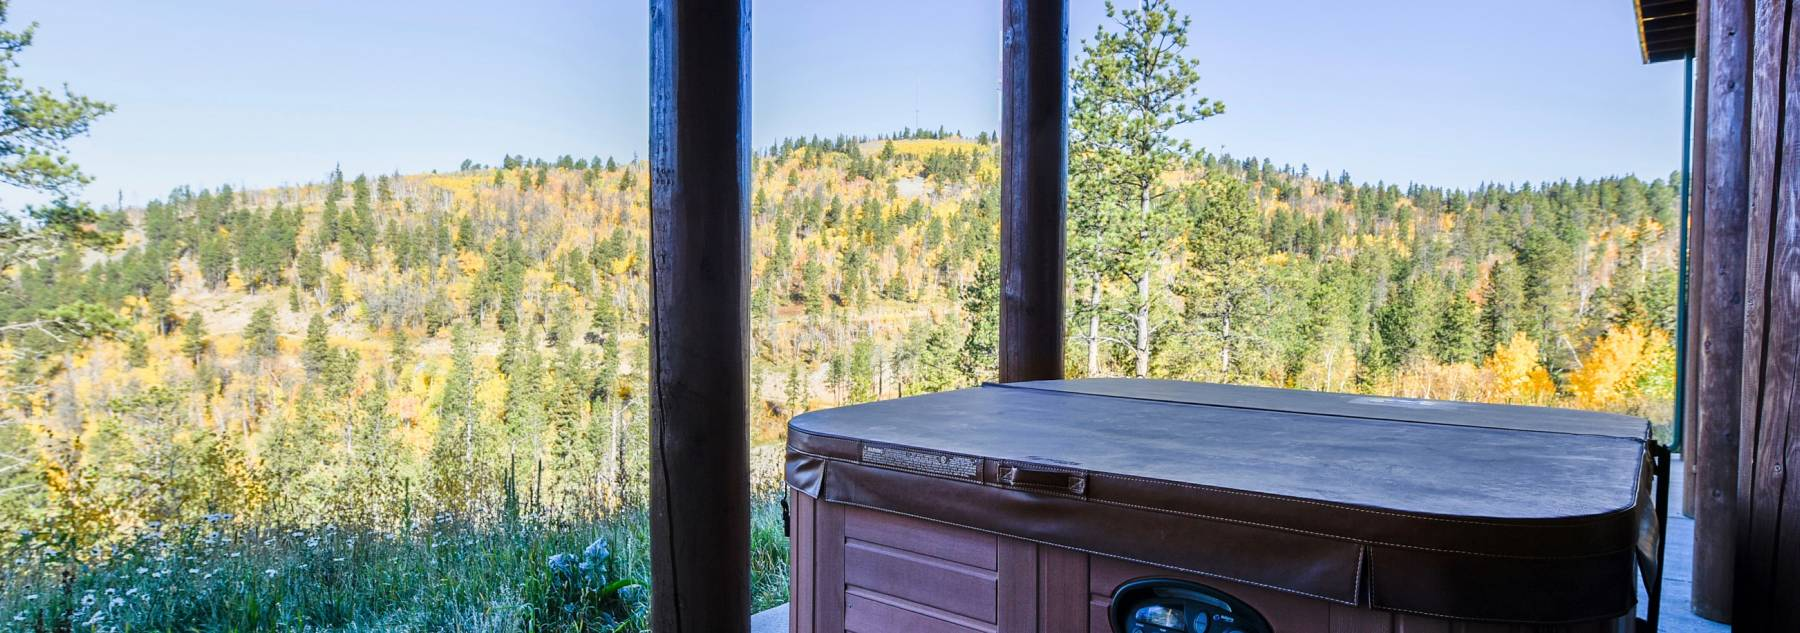 Hot Tub, fall, view, pine trees